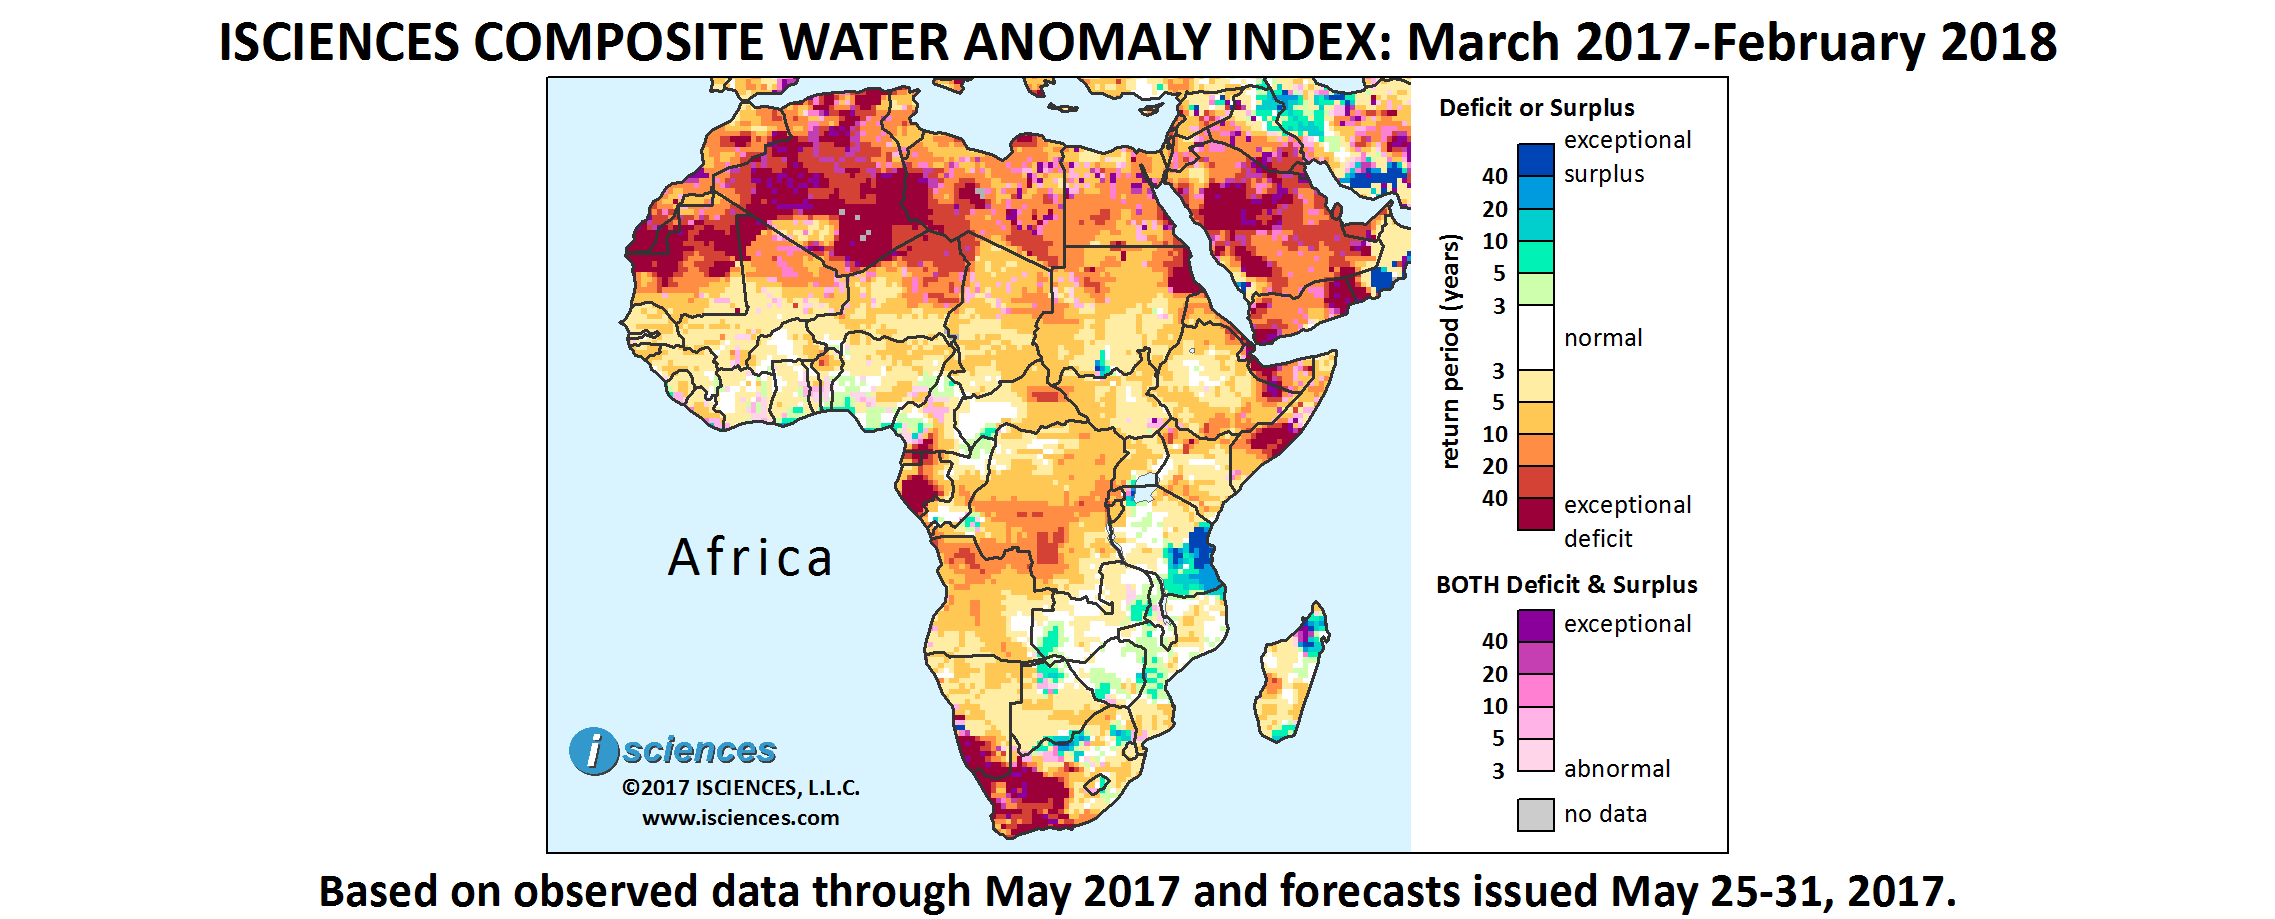 ISciences_Africa_R201705_12mo_twit_pic.png